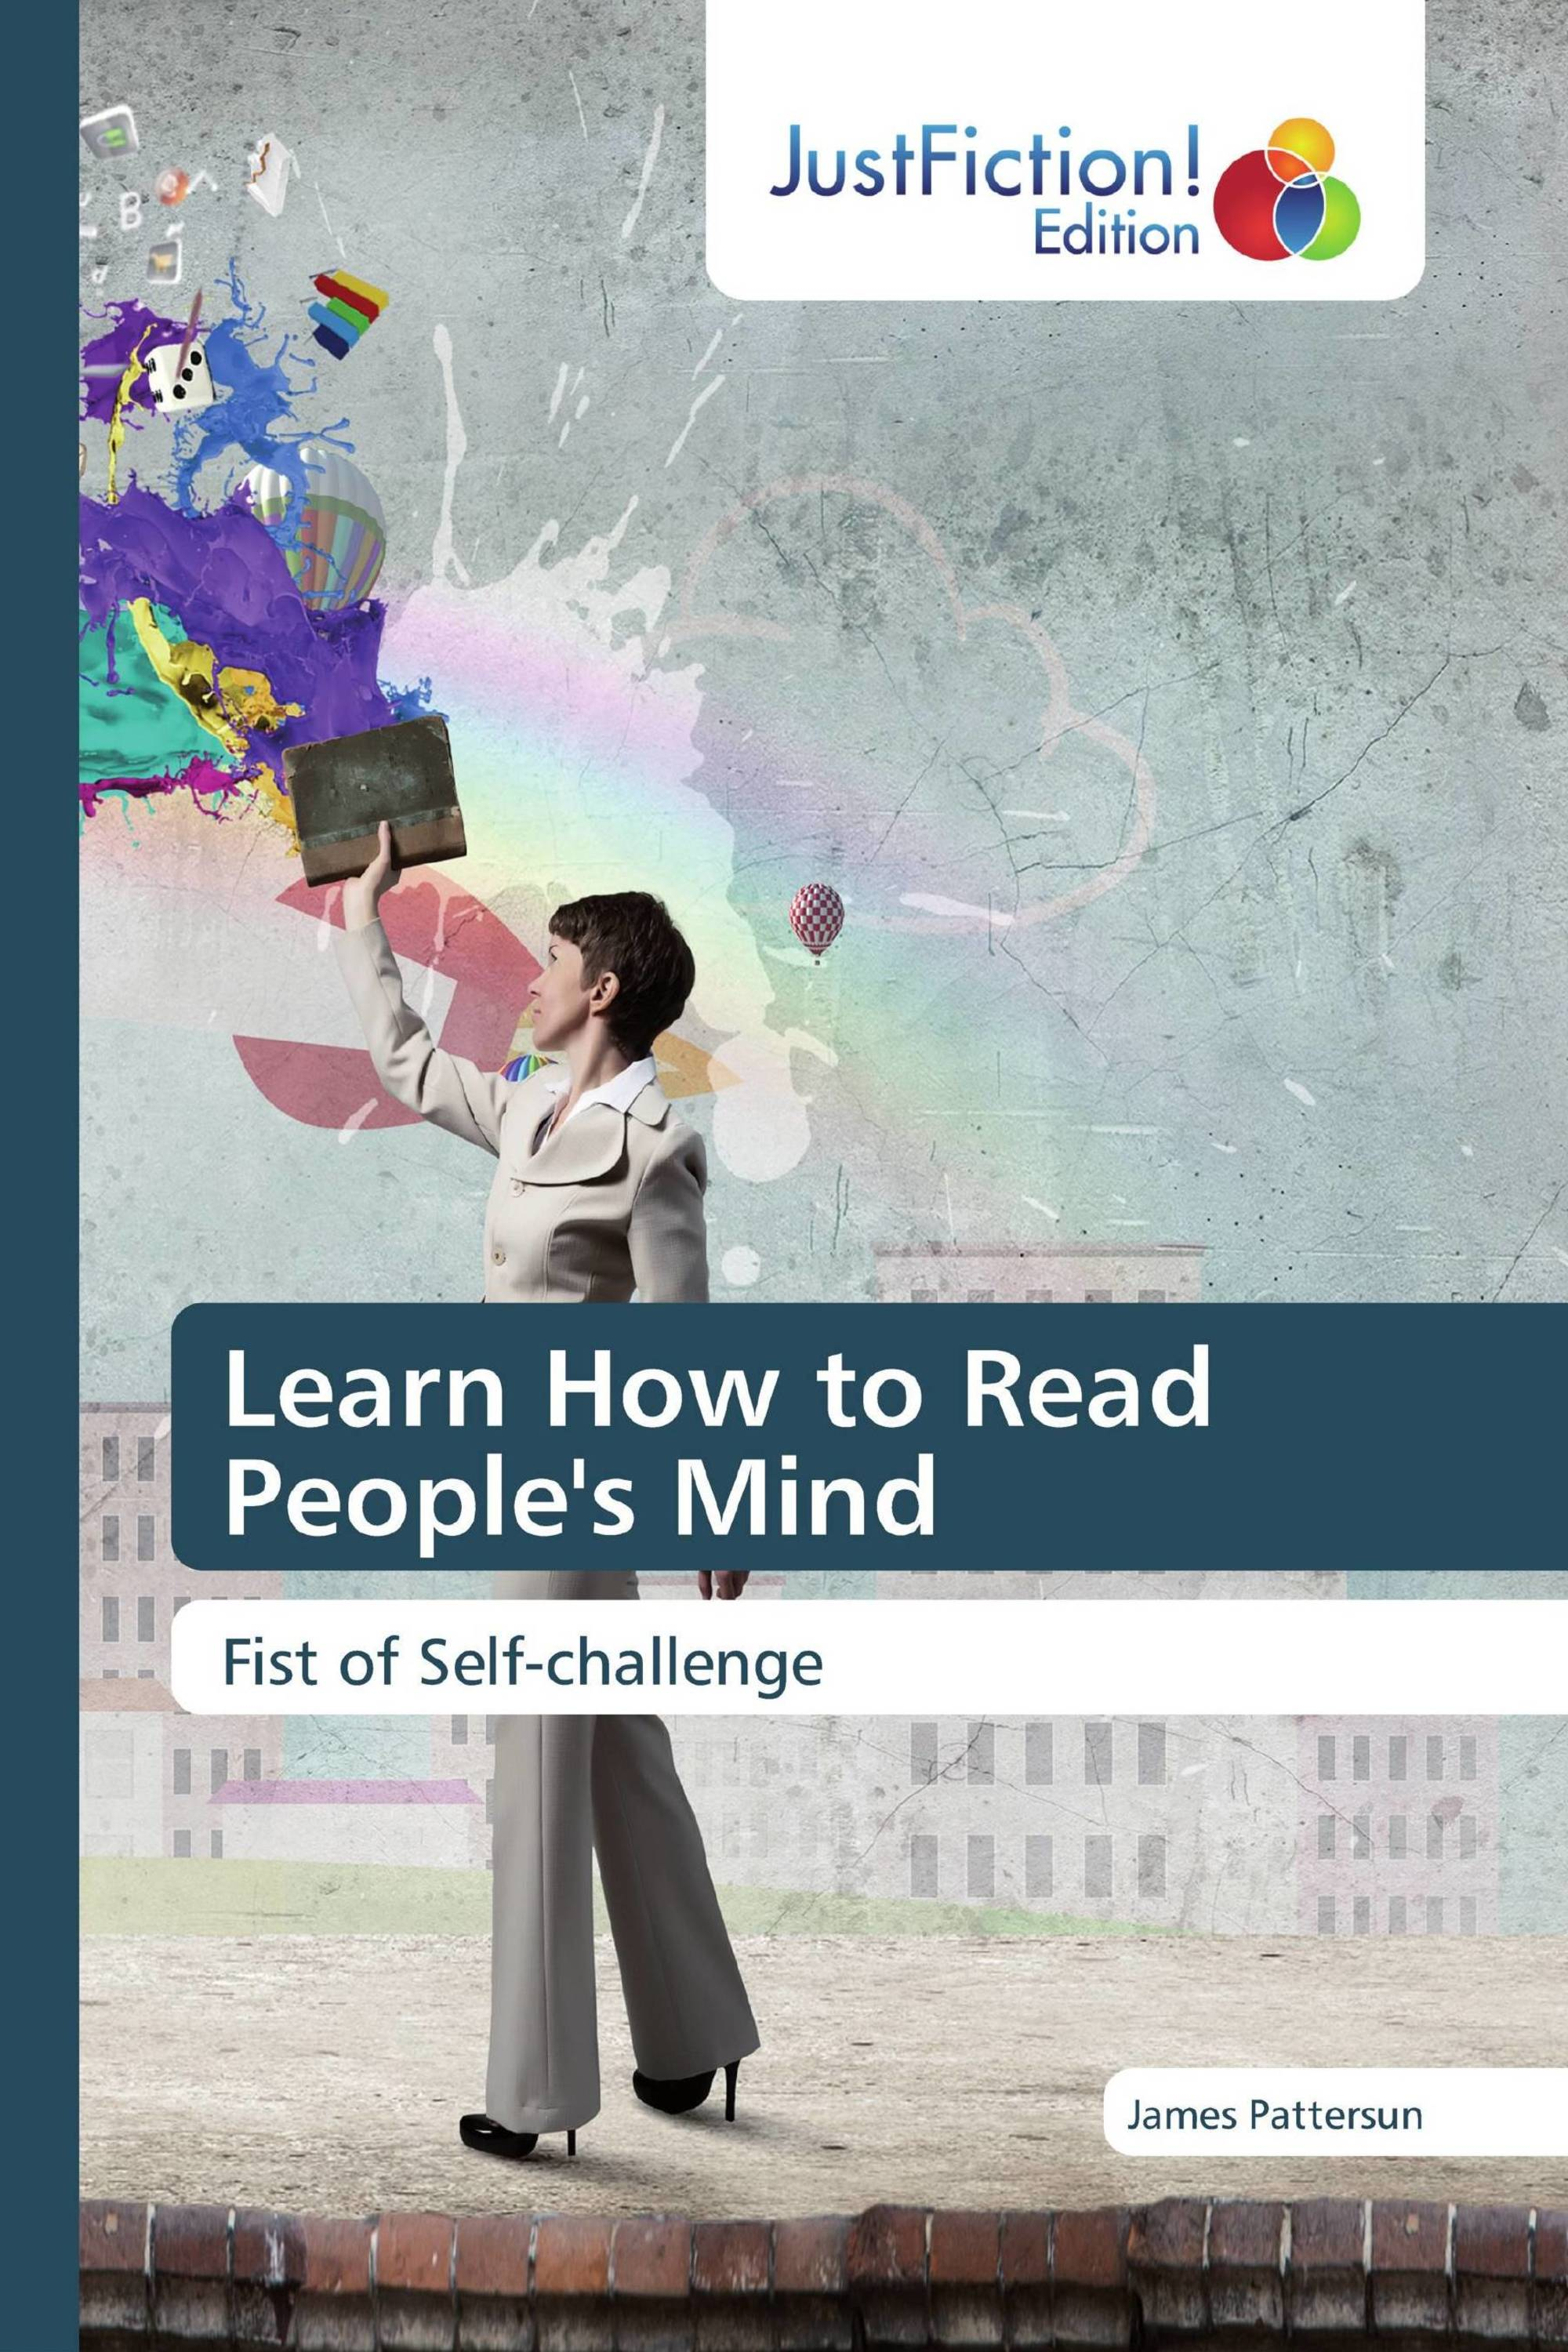 Learn How to Read People's Mind